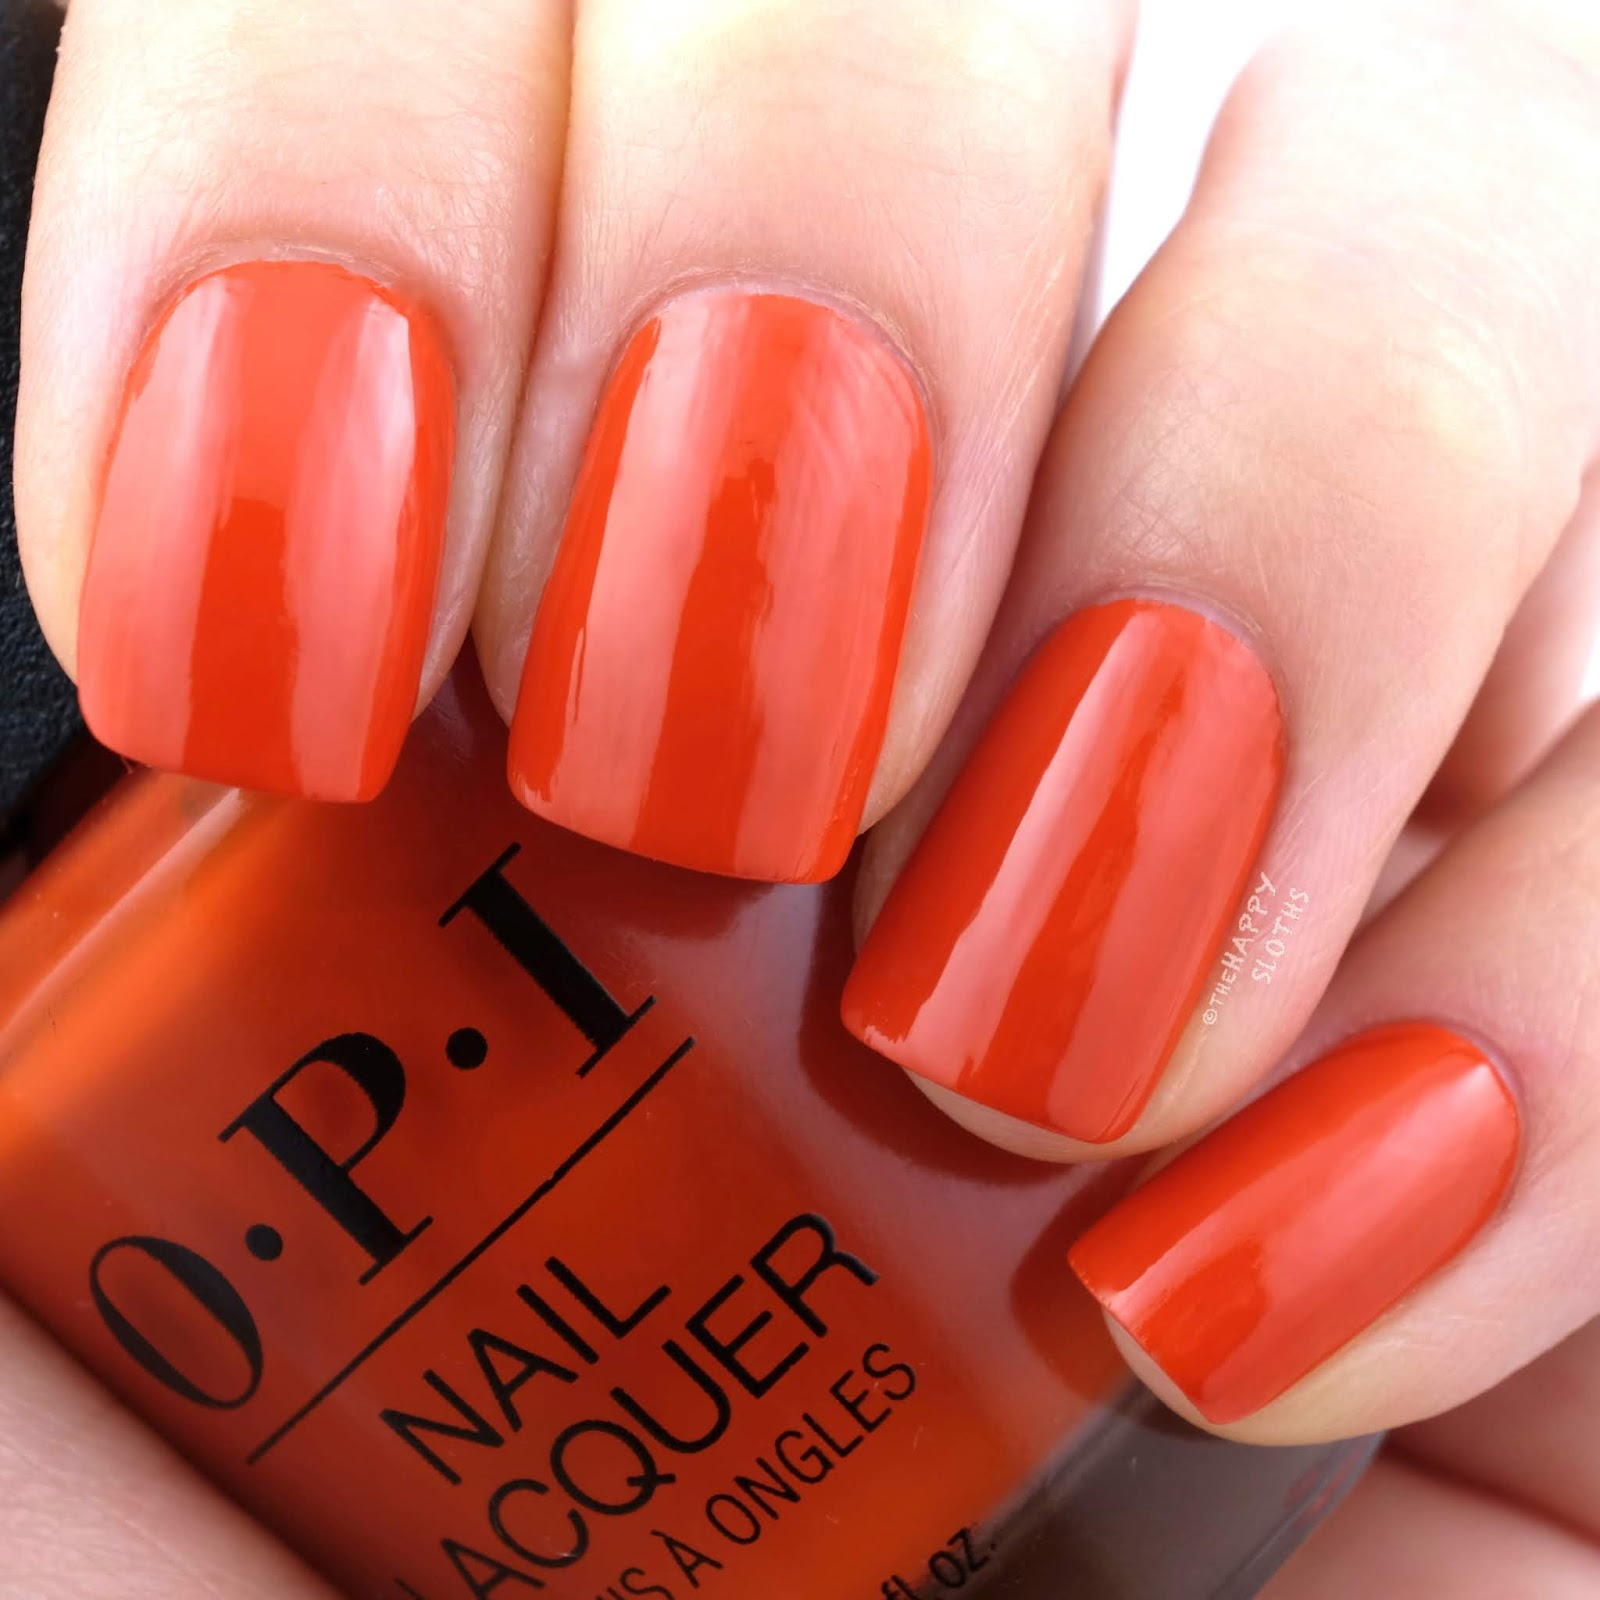 OPI | Fall 2019 Scotland Collection | Suzi Needs a Loch-smith: Review and Swatches